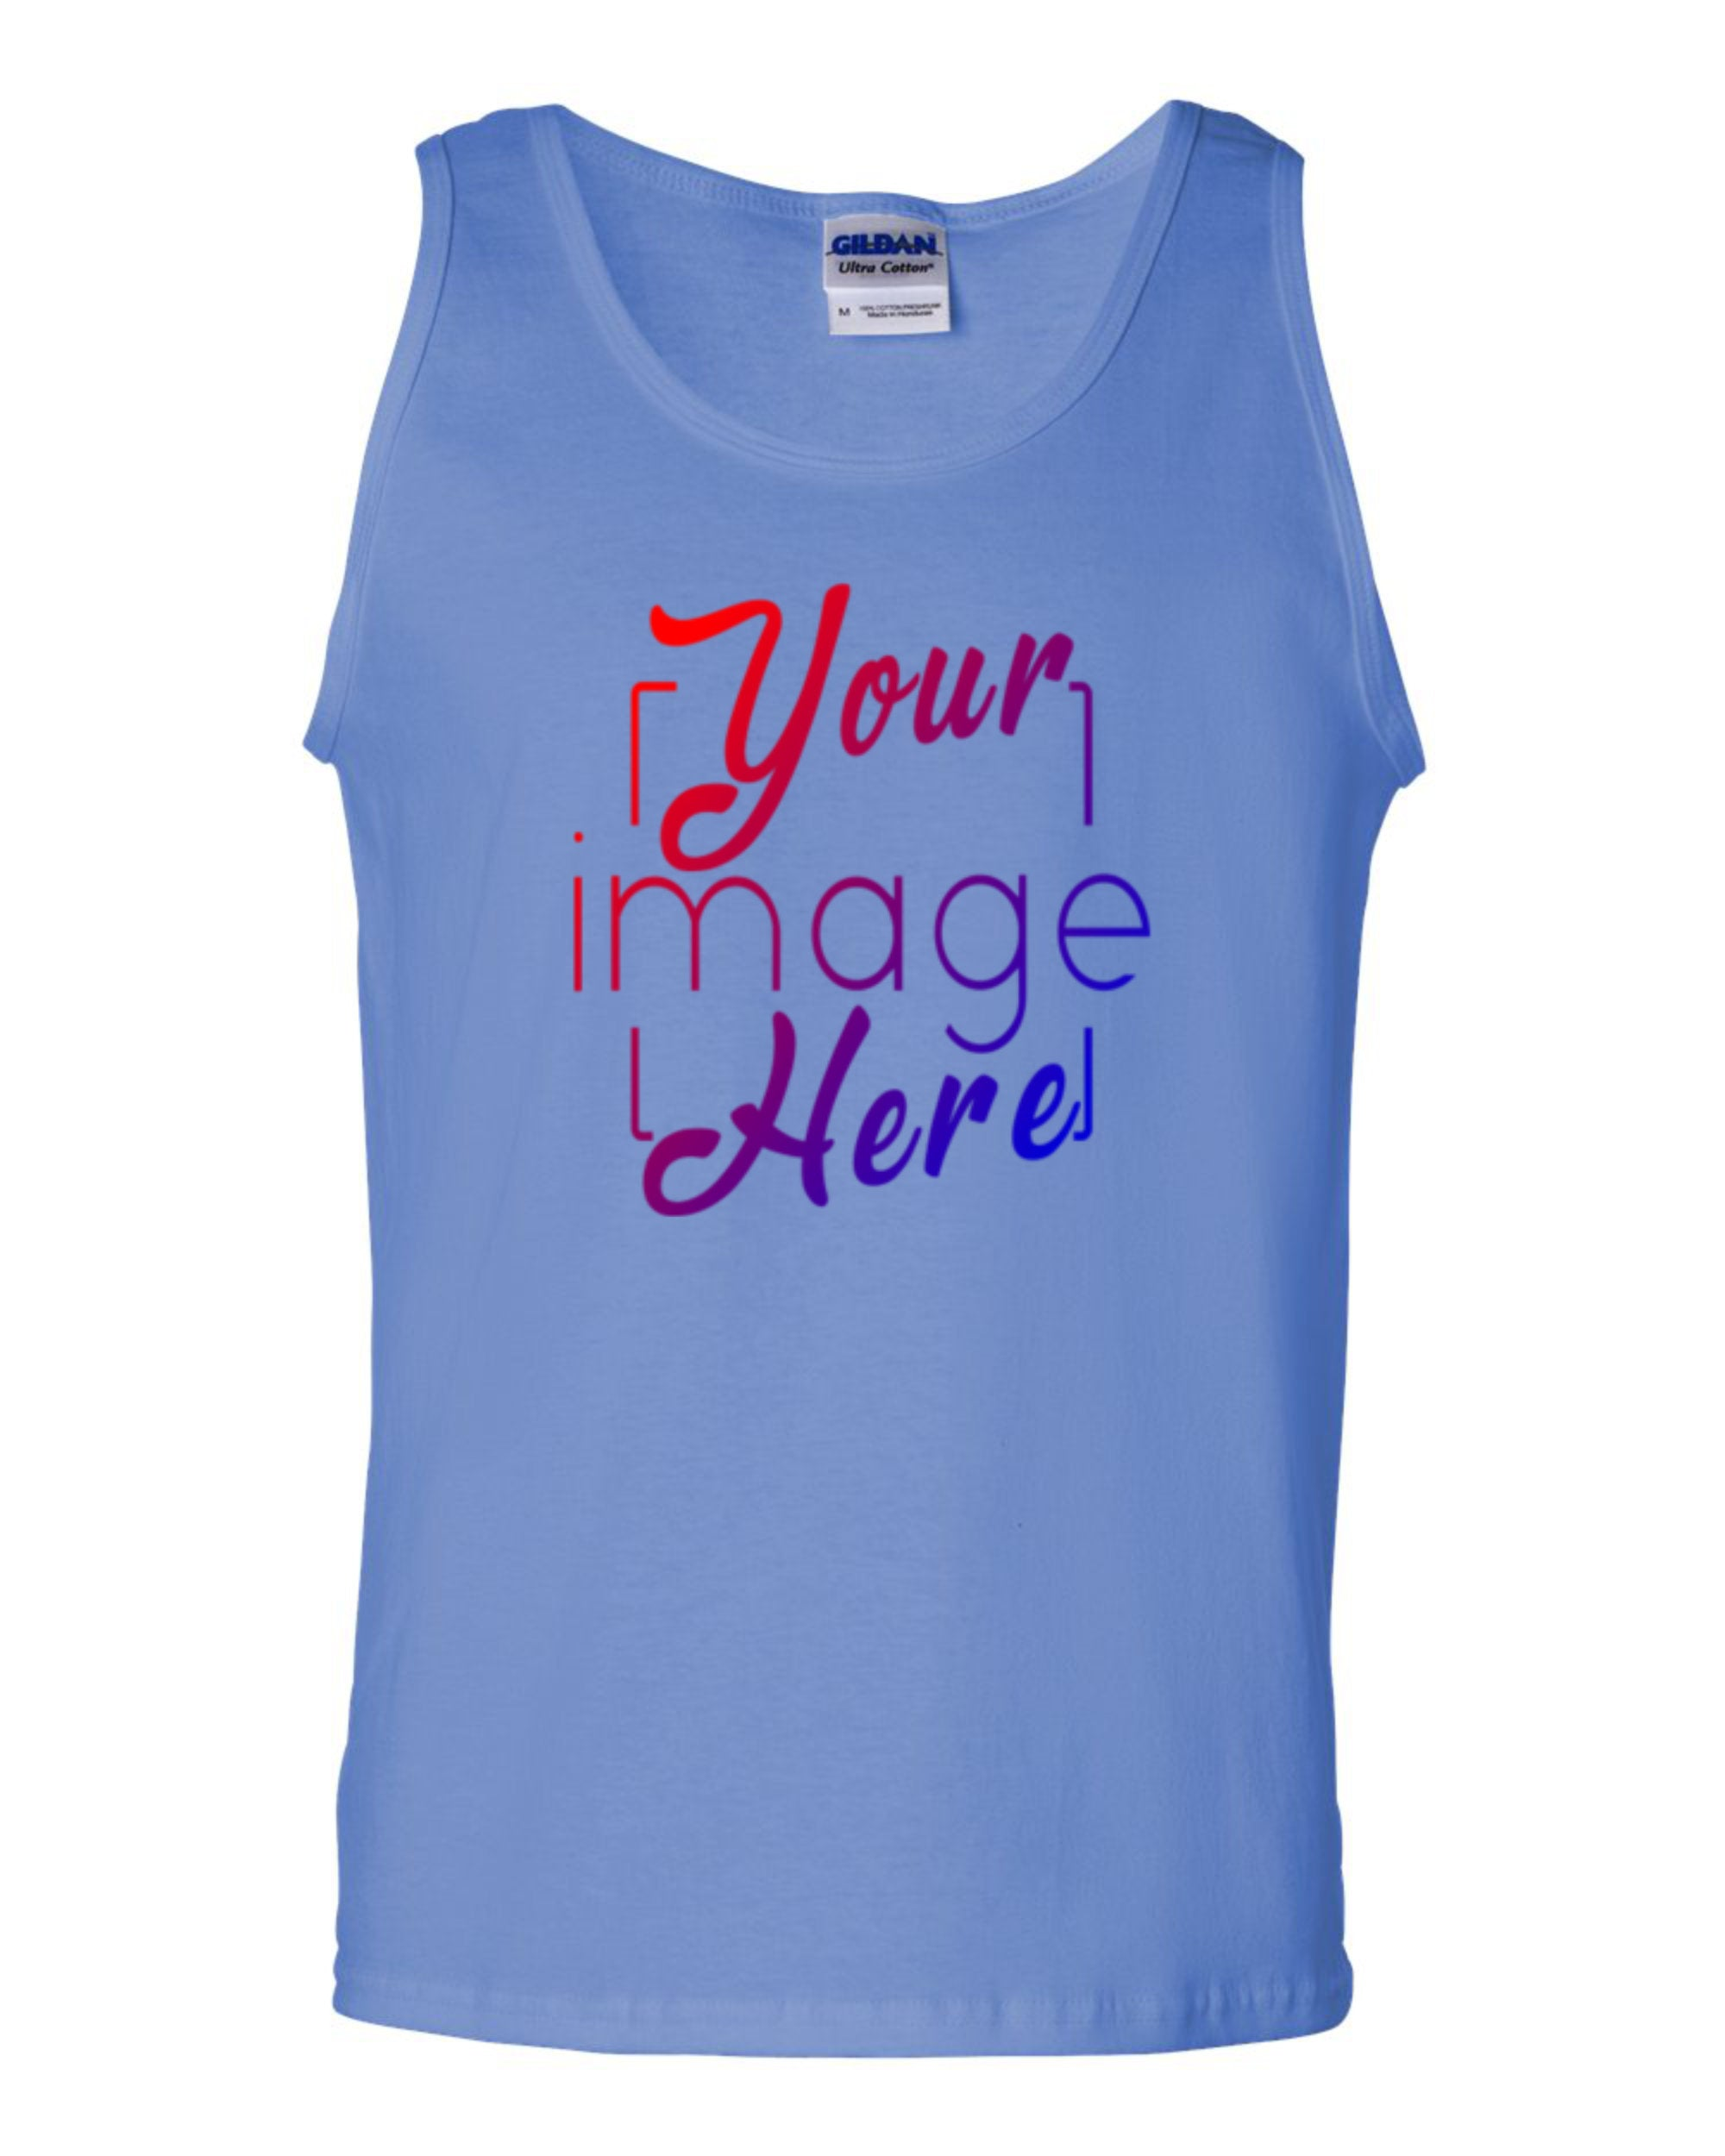 Front Image of Ultra Cotton Tank Top for Custom Printing